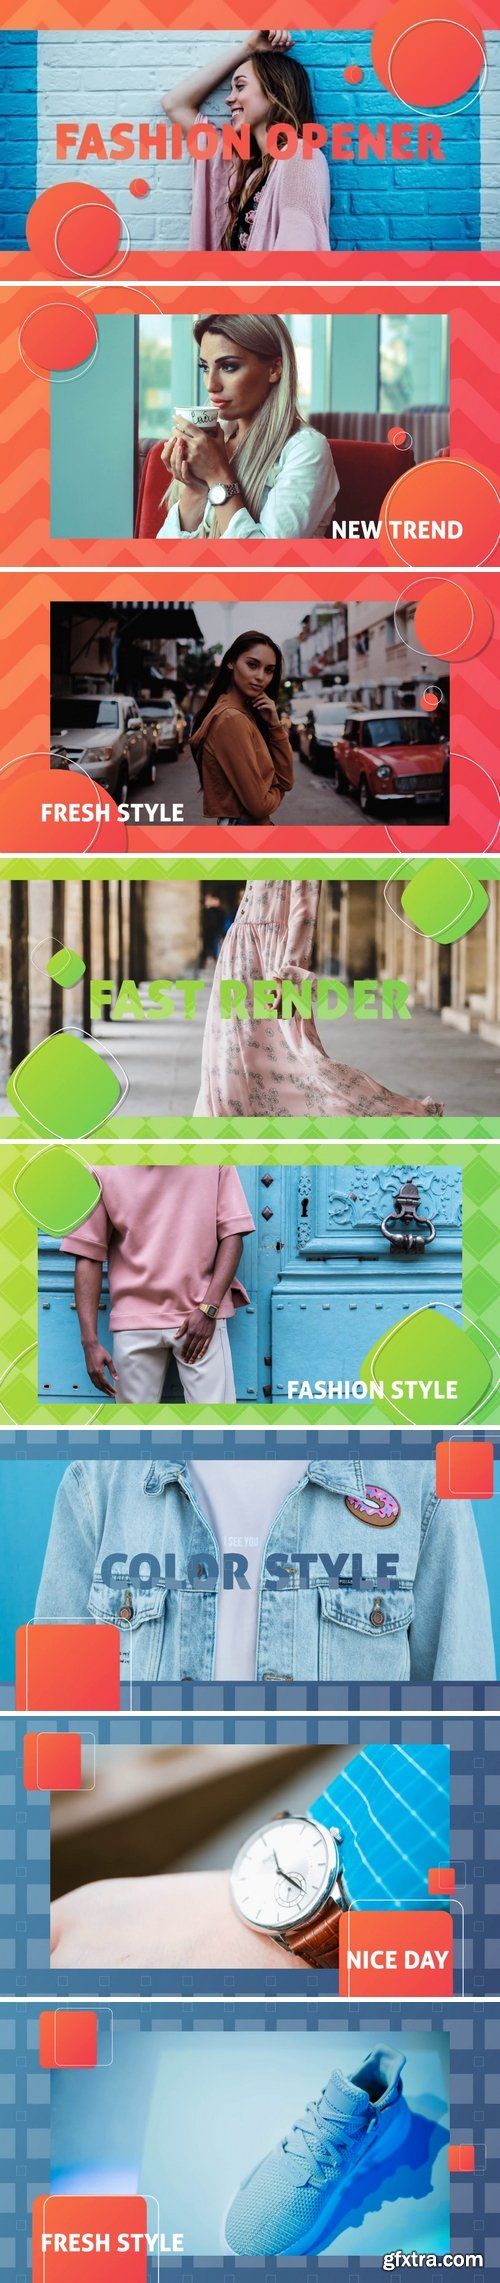 MotionArray - Fashion Promo After Effects Templates 160048